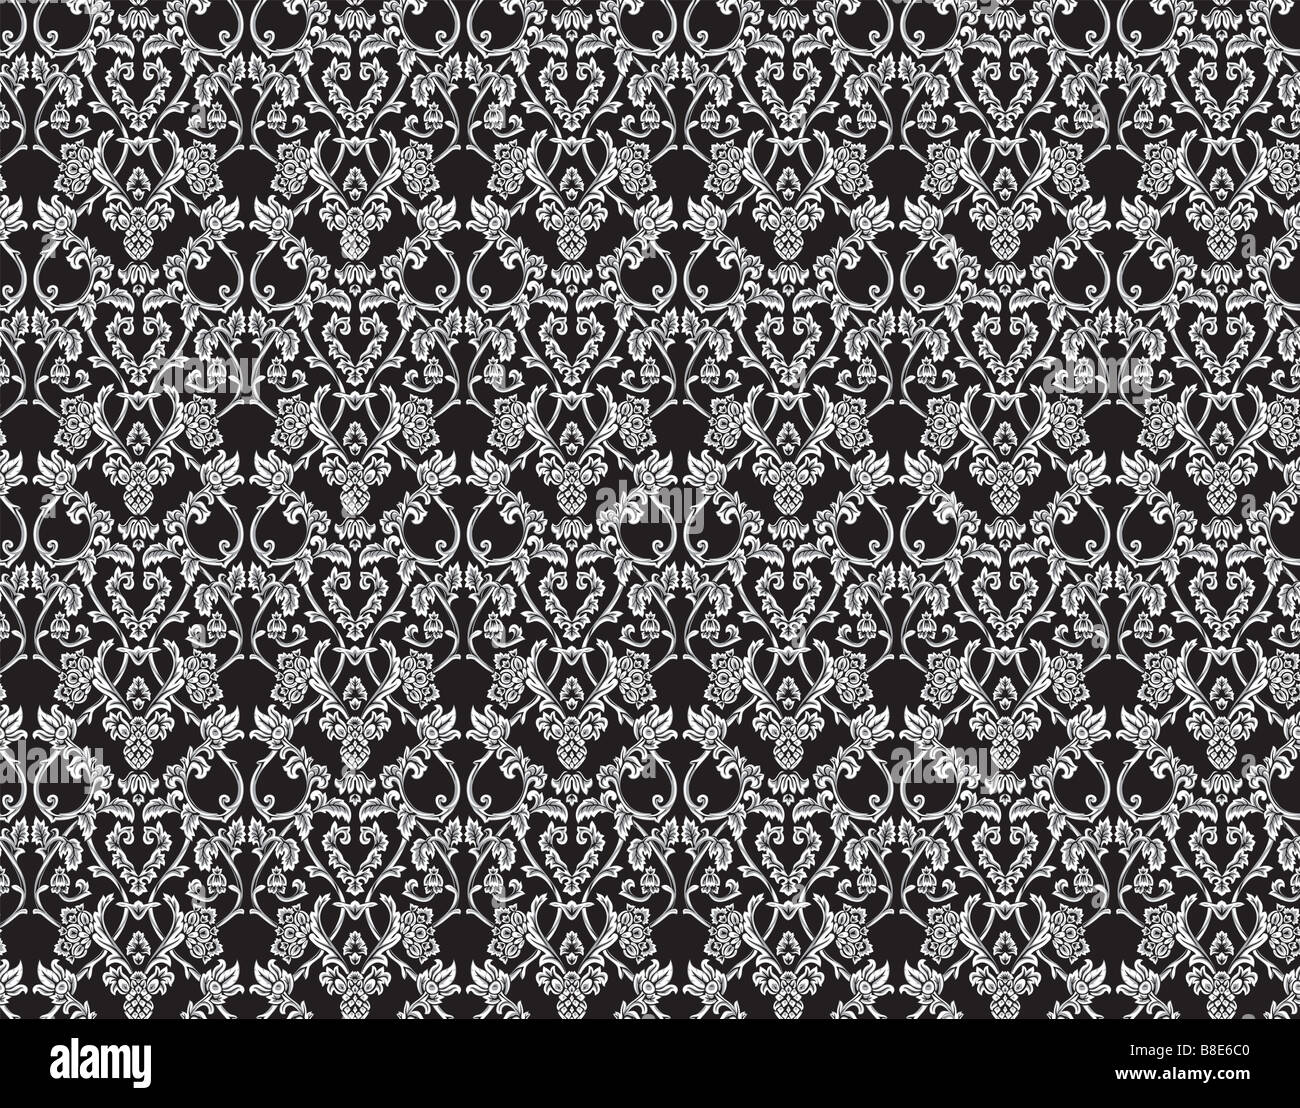 Seamless victorian floral background Big XXL size - Stock Image